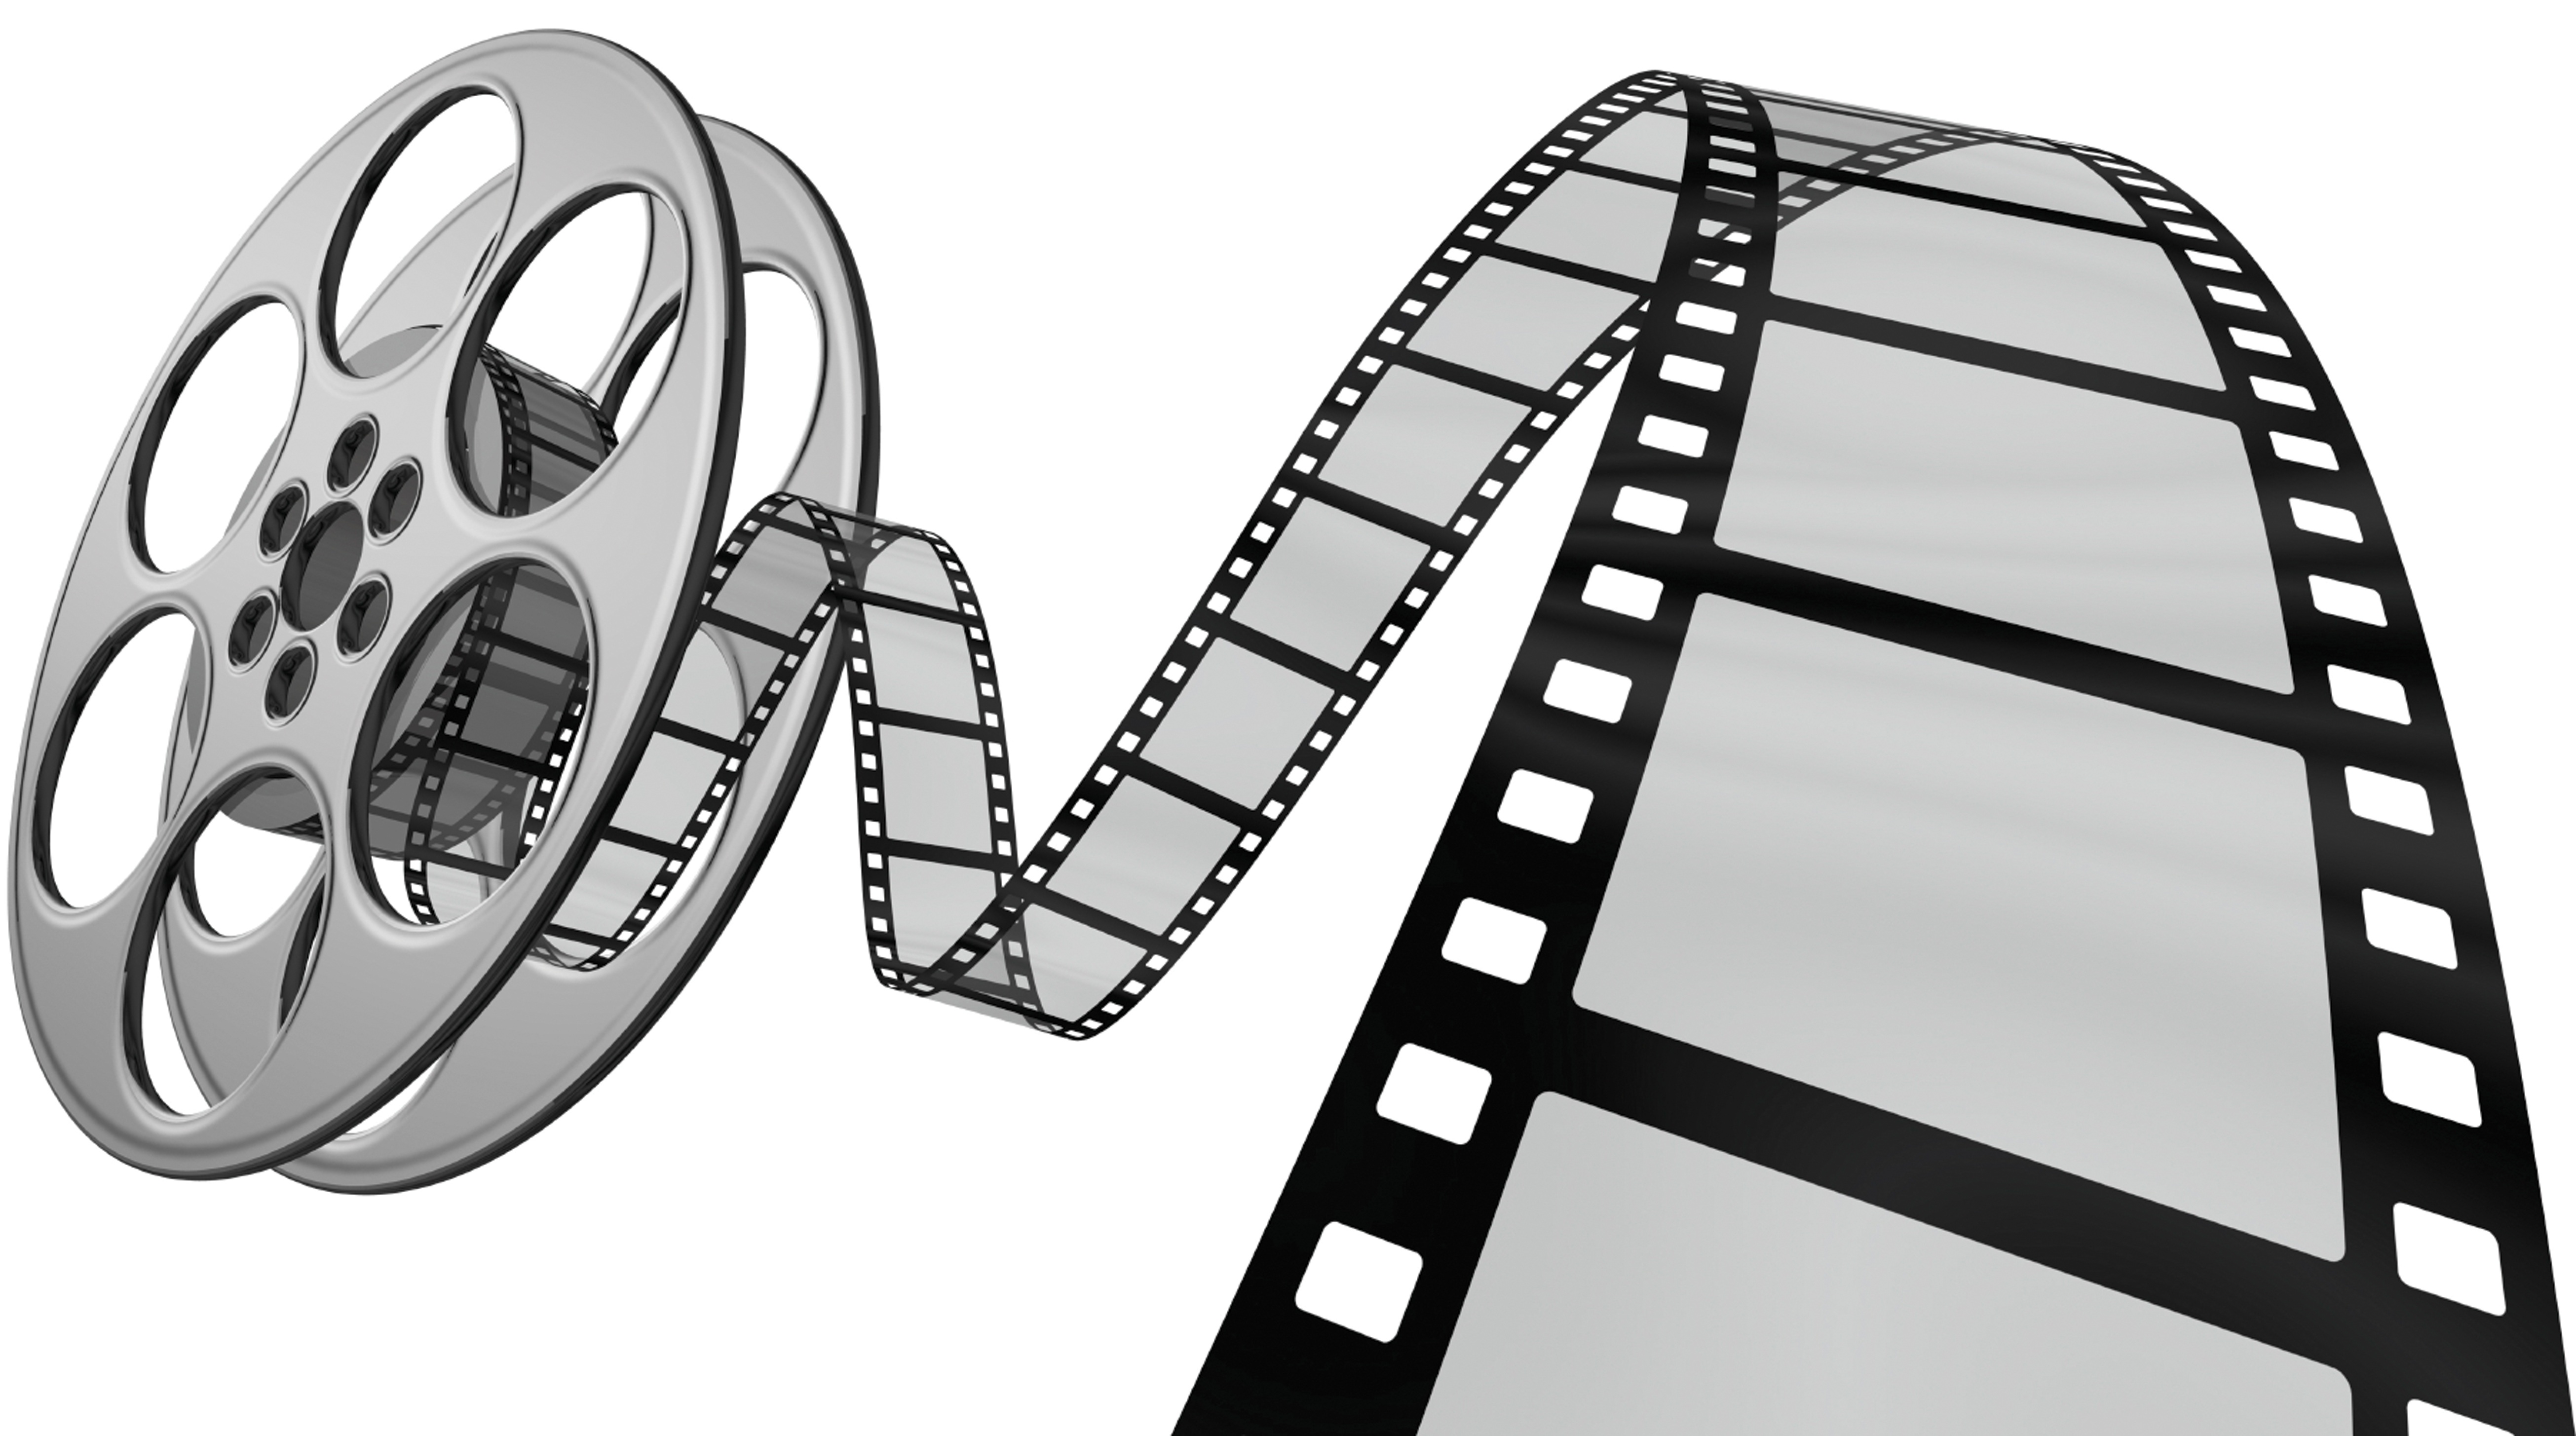 Free Movie Reel Png, Download Free Clip Art, Free Clip Art.